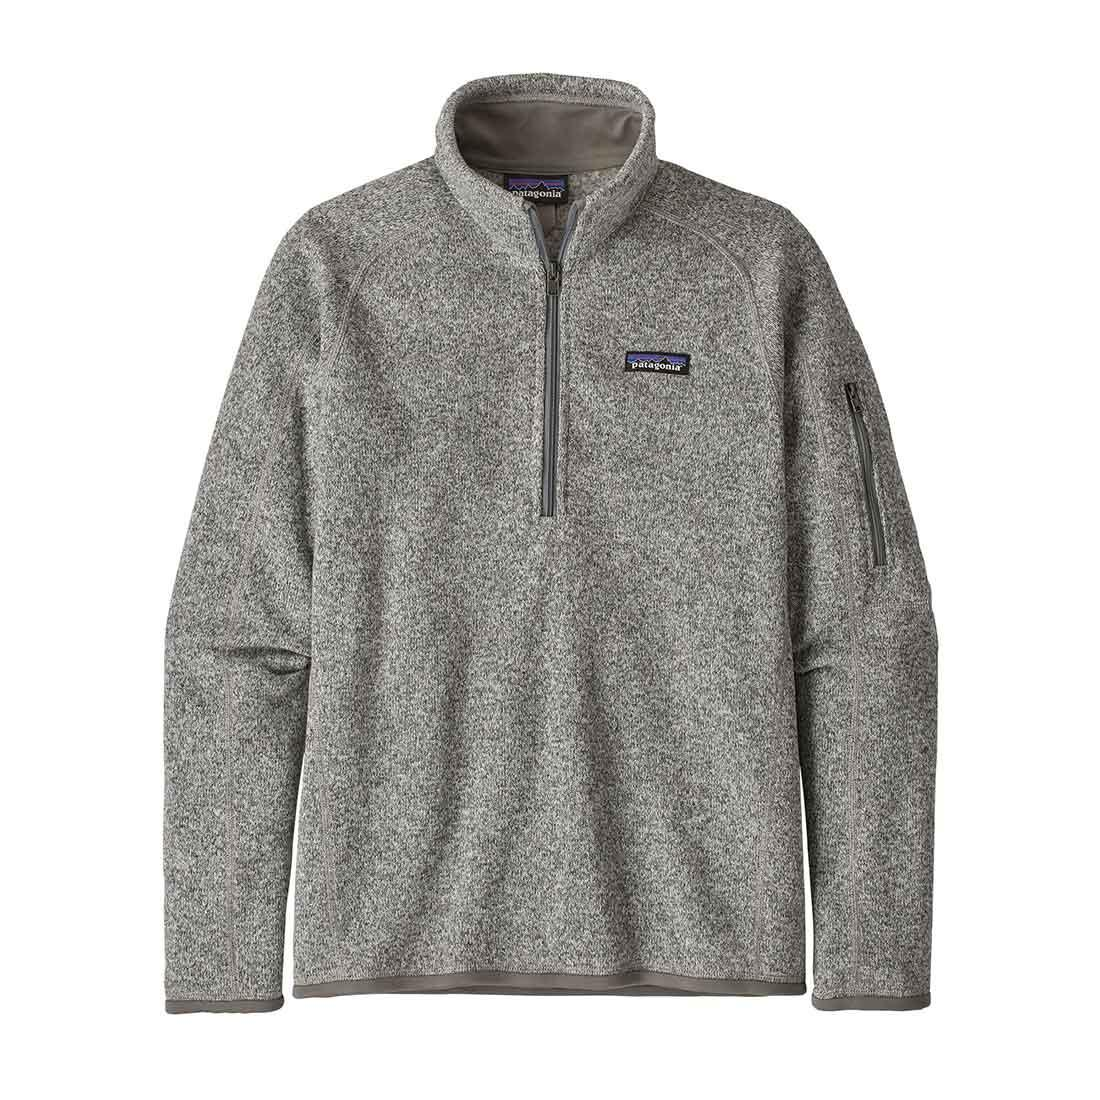 Patagonia Women's Better Sweater 1/4 Zip - Birch White